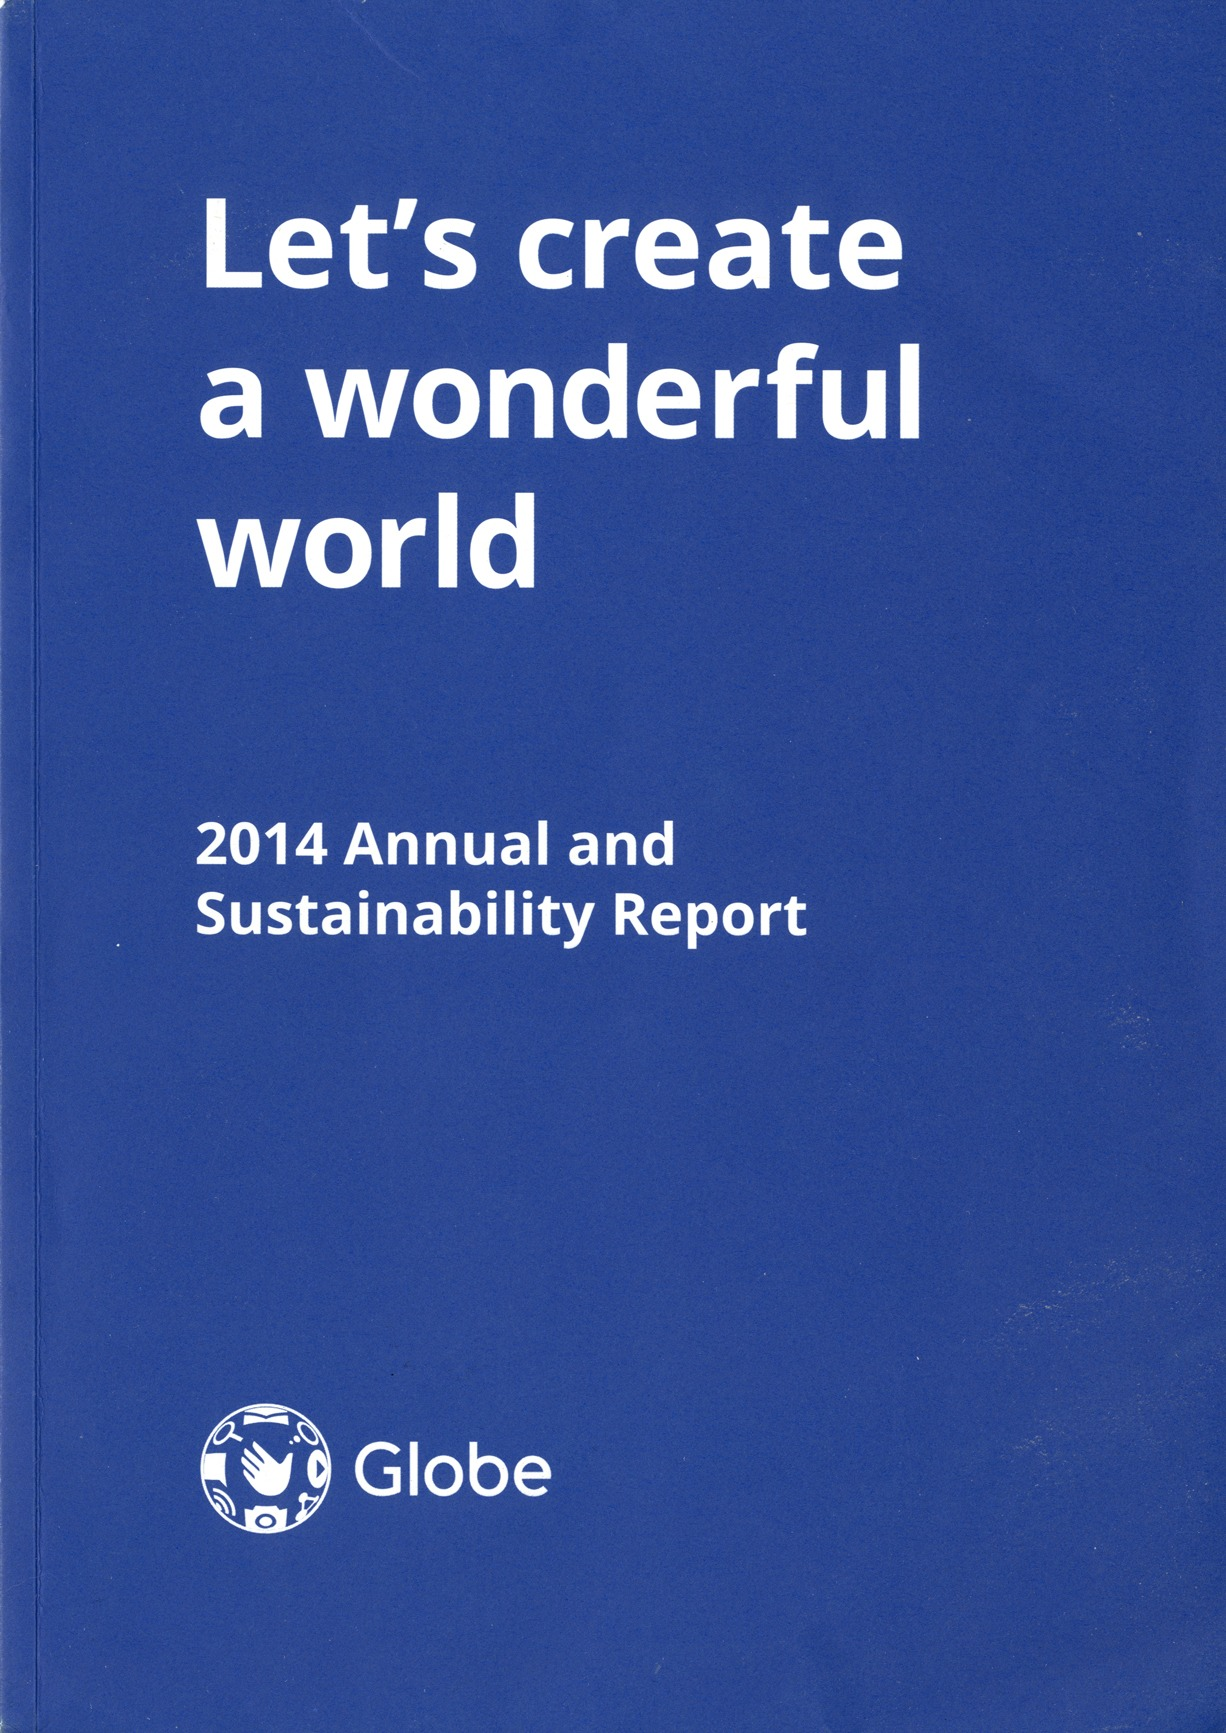 Us news and world report best childrens hospitals 2010